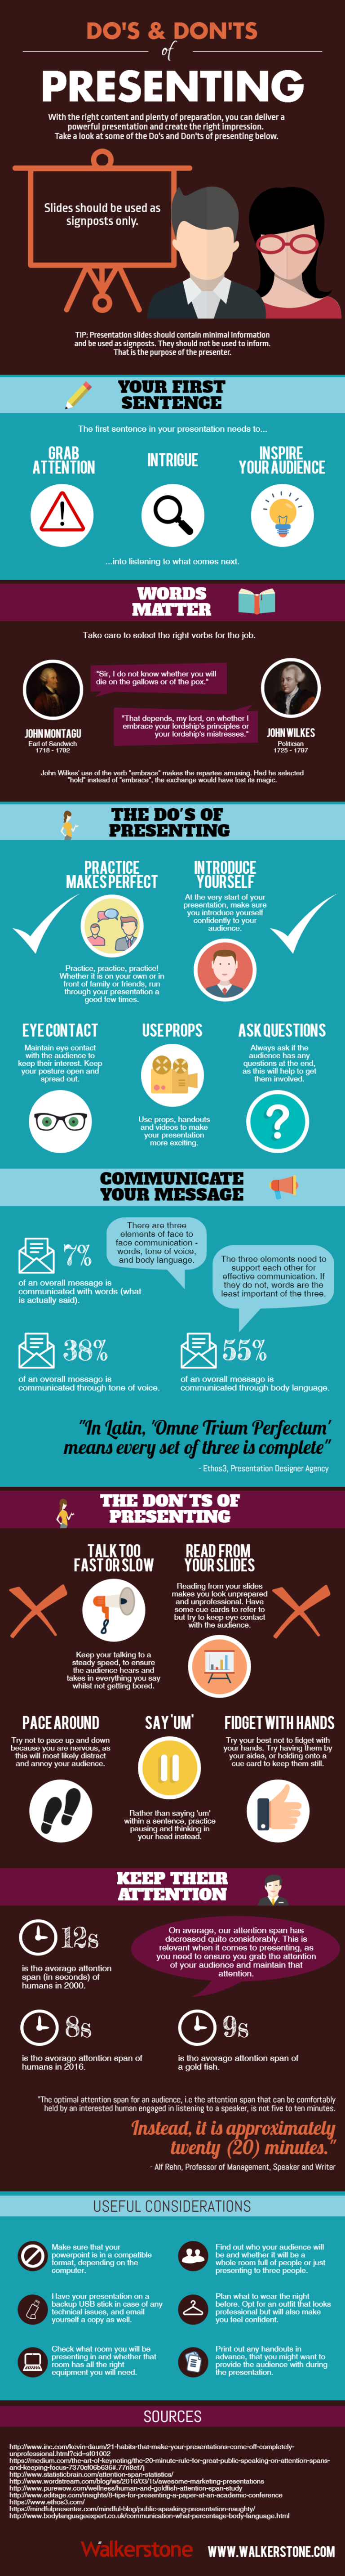 Infographic: Presenting Tips